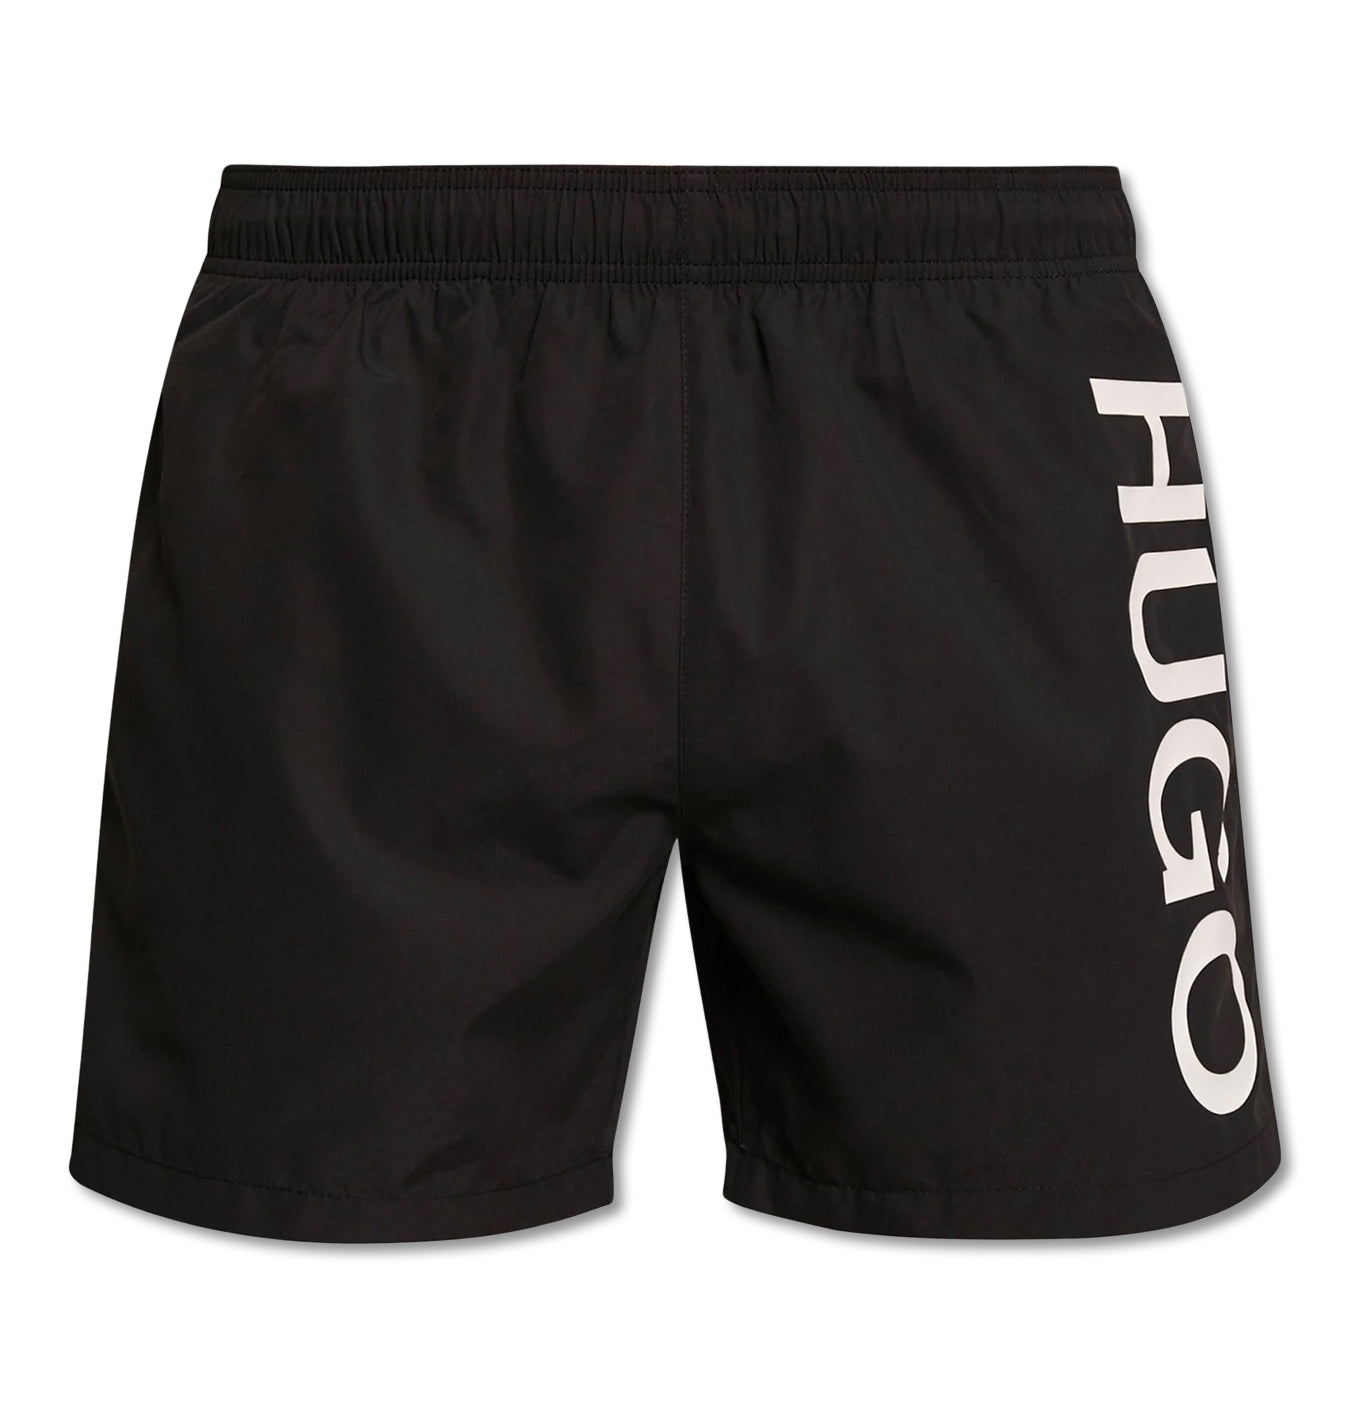 Image of   ABAS Shorts